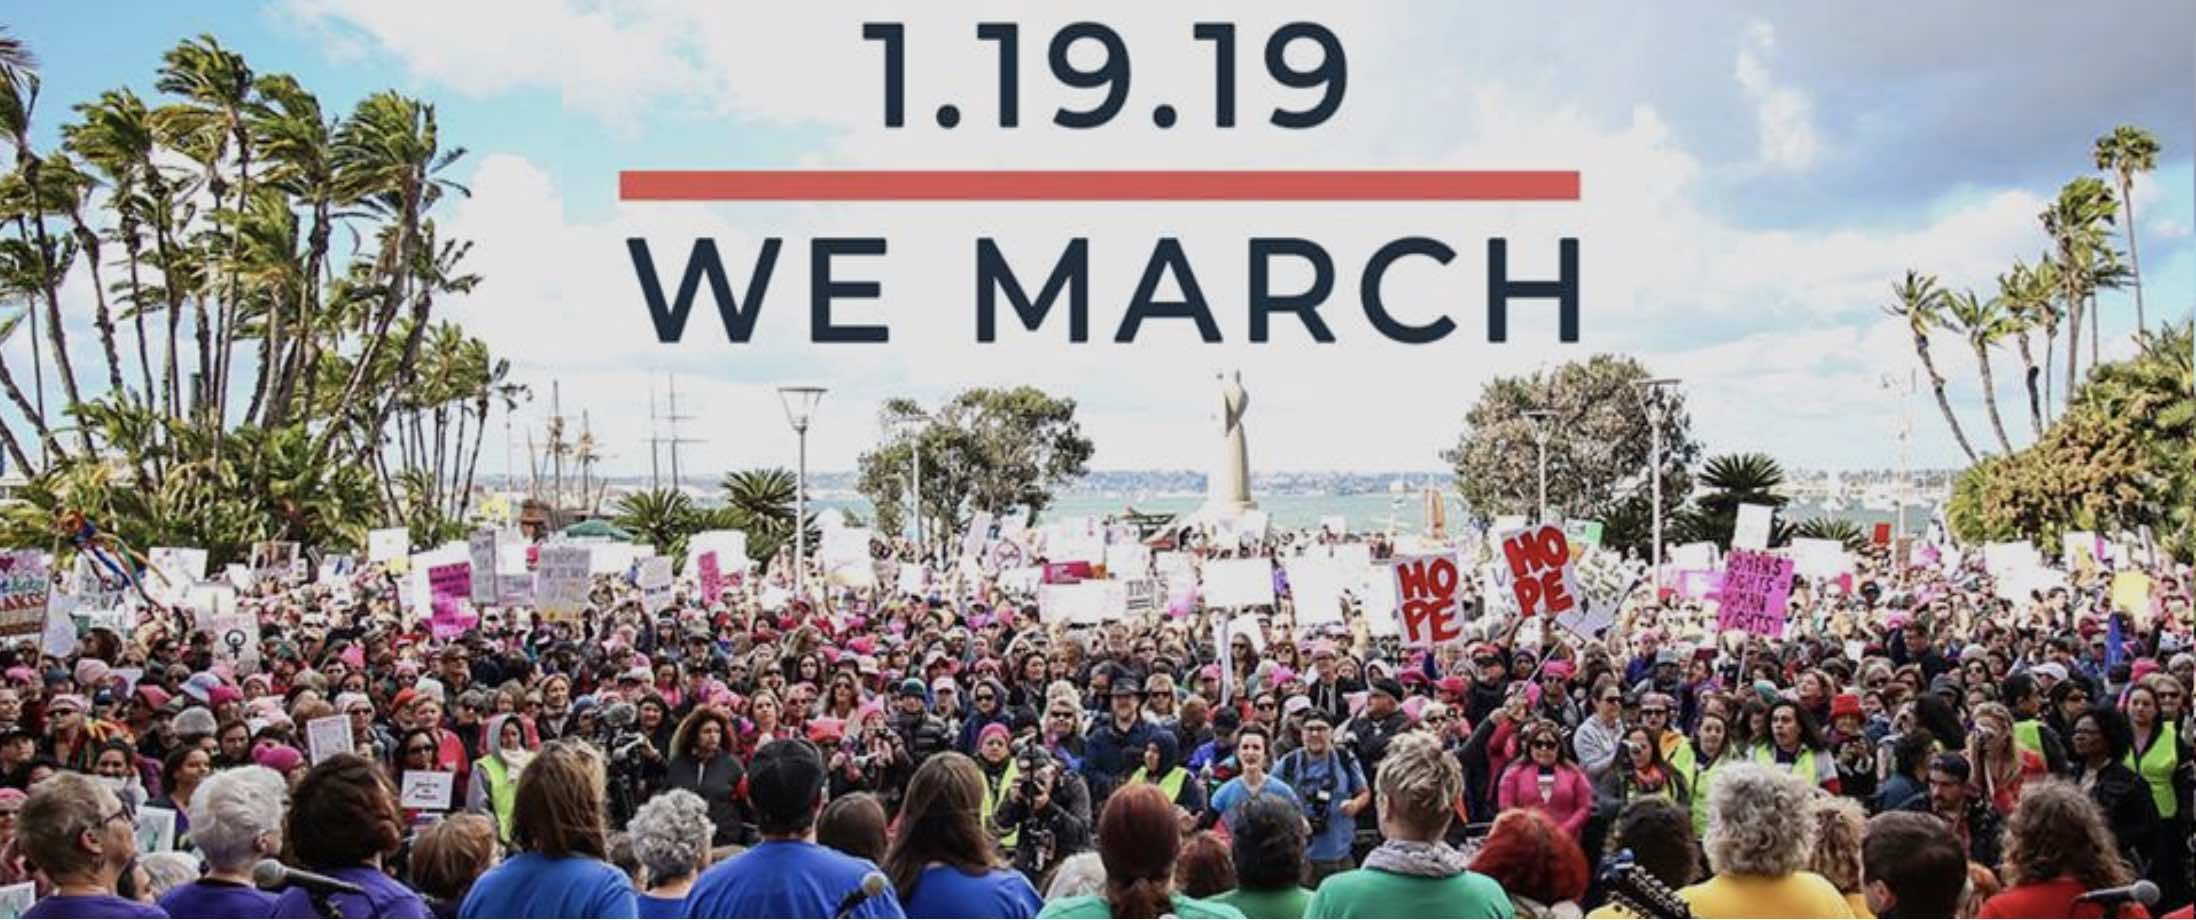 Women's March San Diego 2019